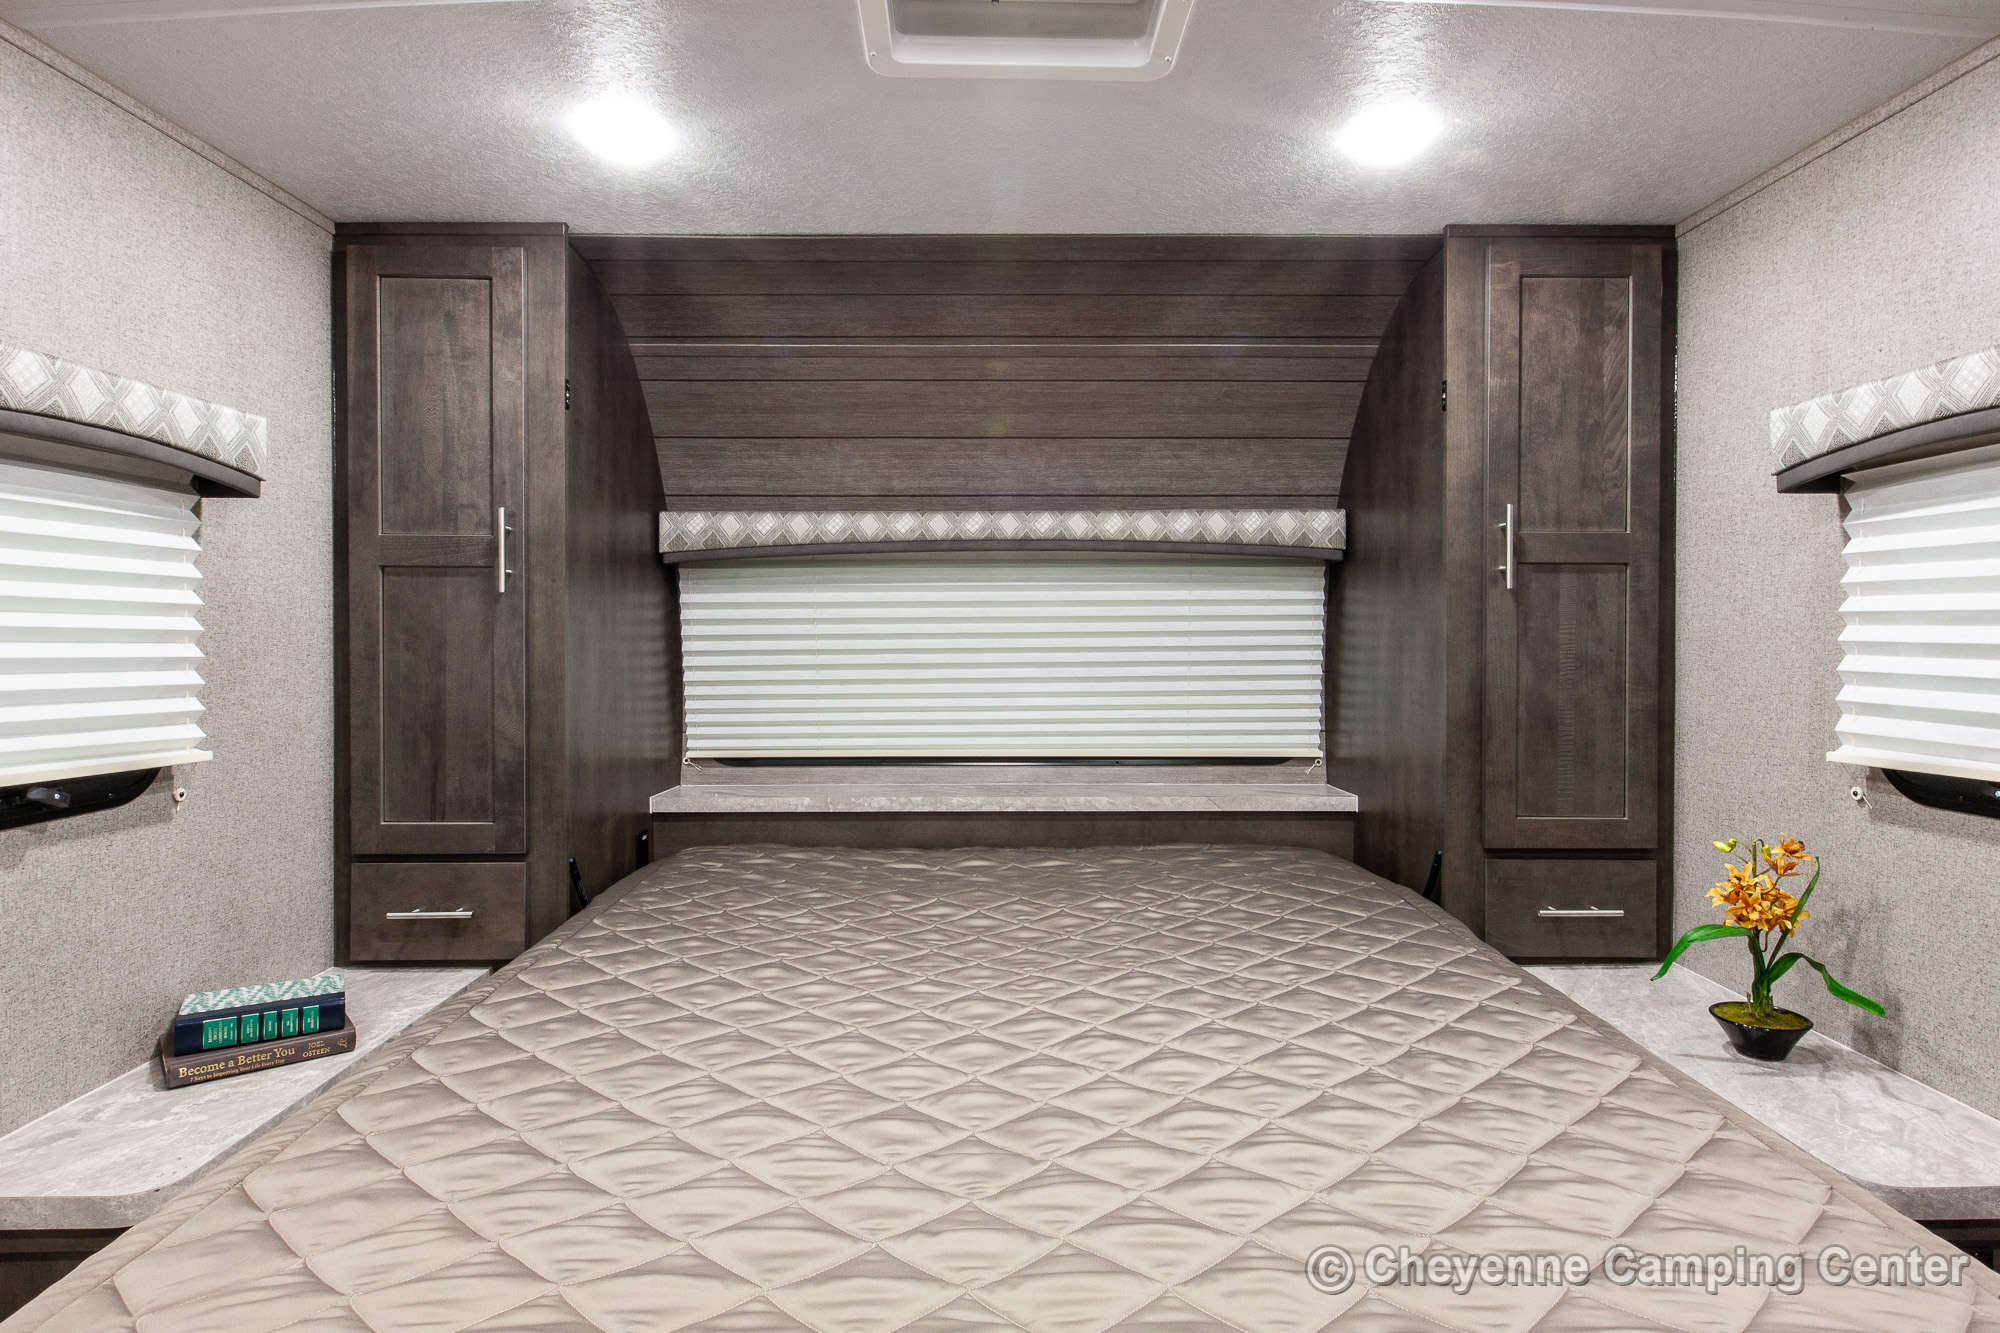 2020 Forest River Flagstaff Micro Lite 21DS Travel Trailer Interior Image